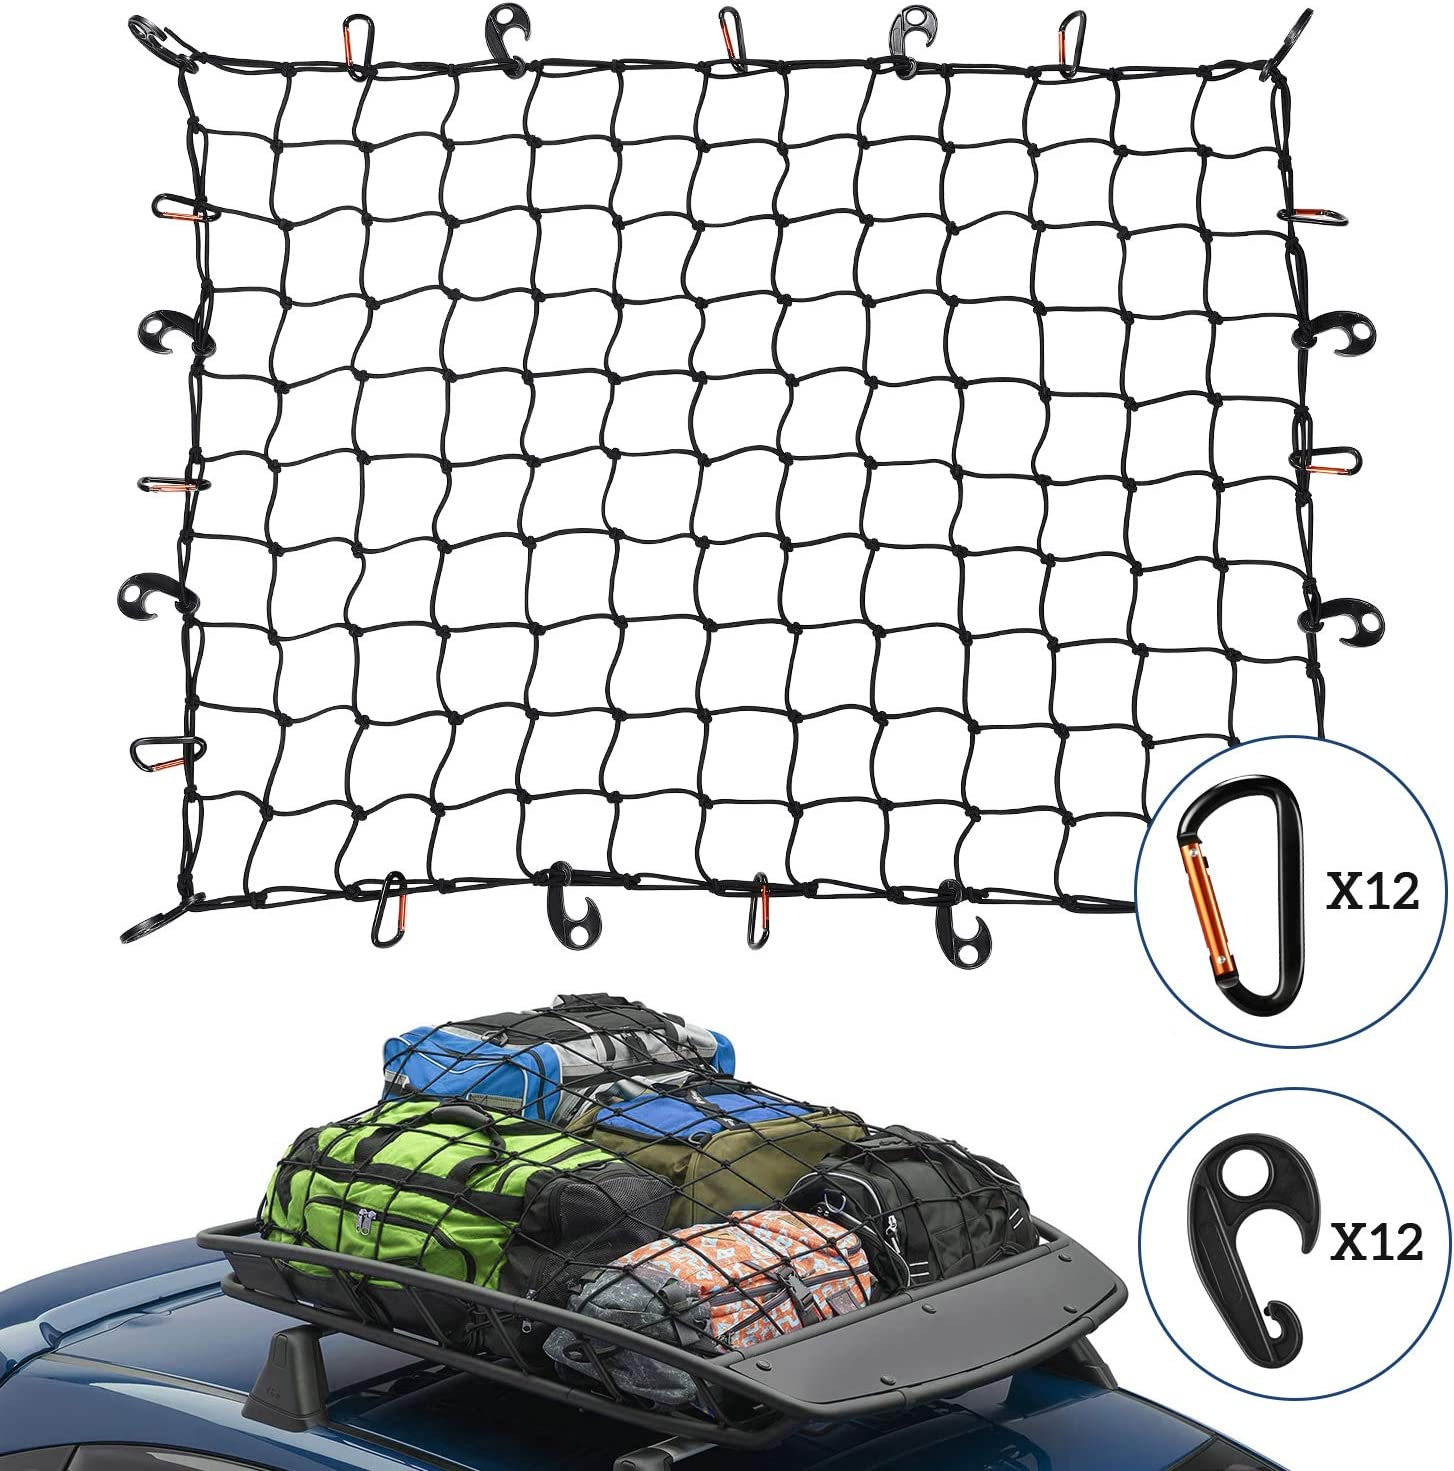 """Rooftop Cargo Basket Large 36/"""" x 60/"""" Stretch Net Netting rooftop loads secure"""